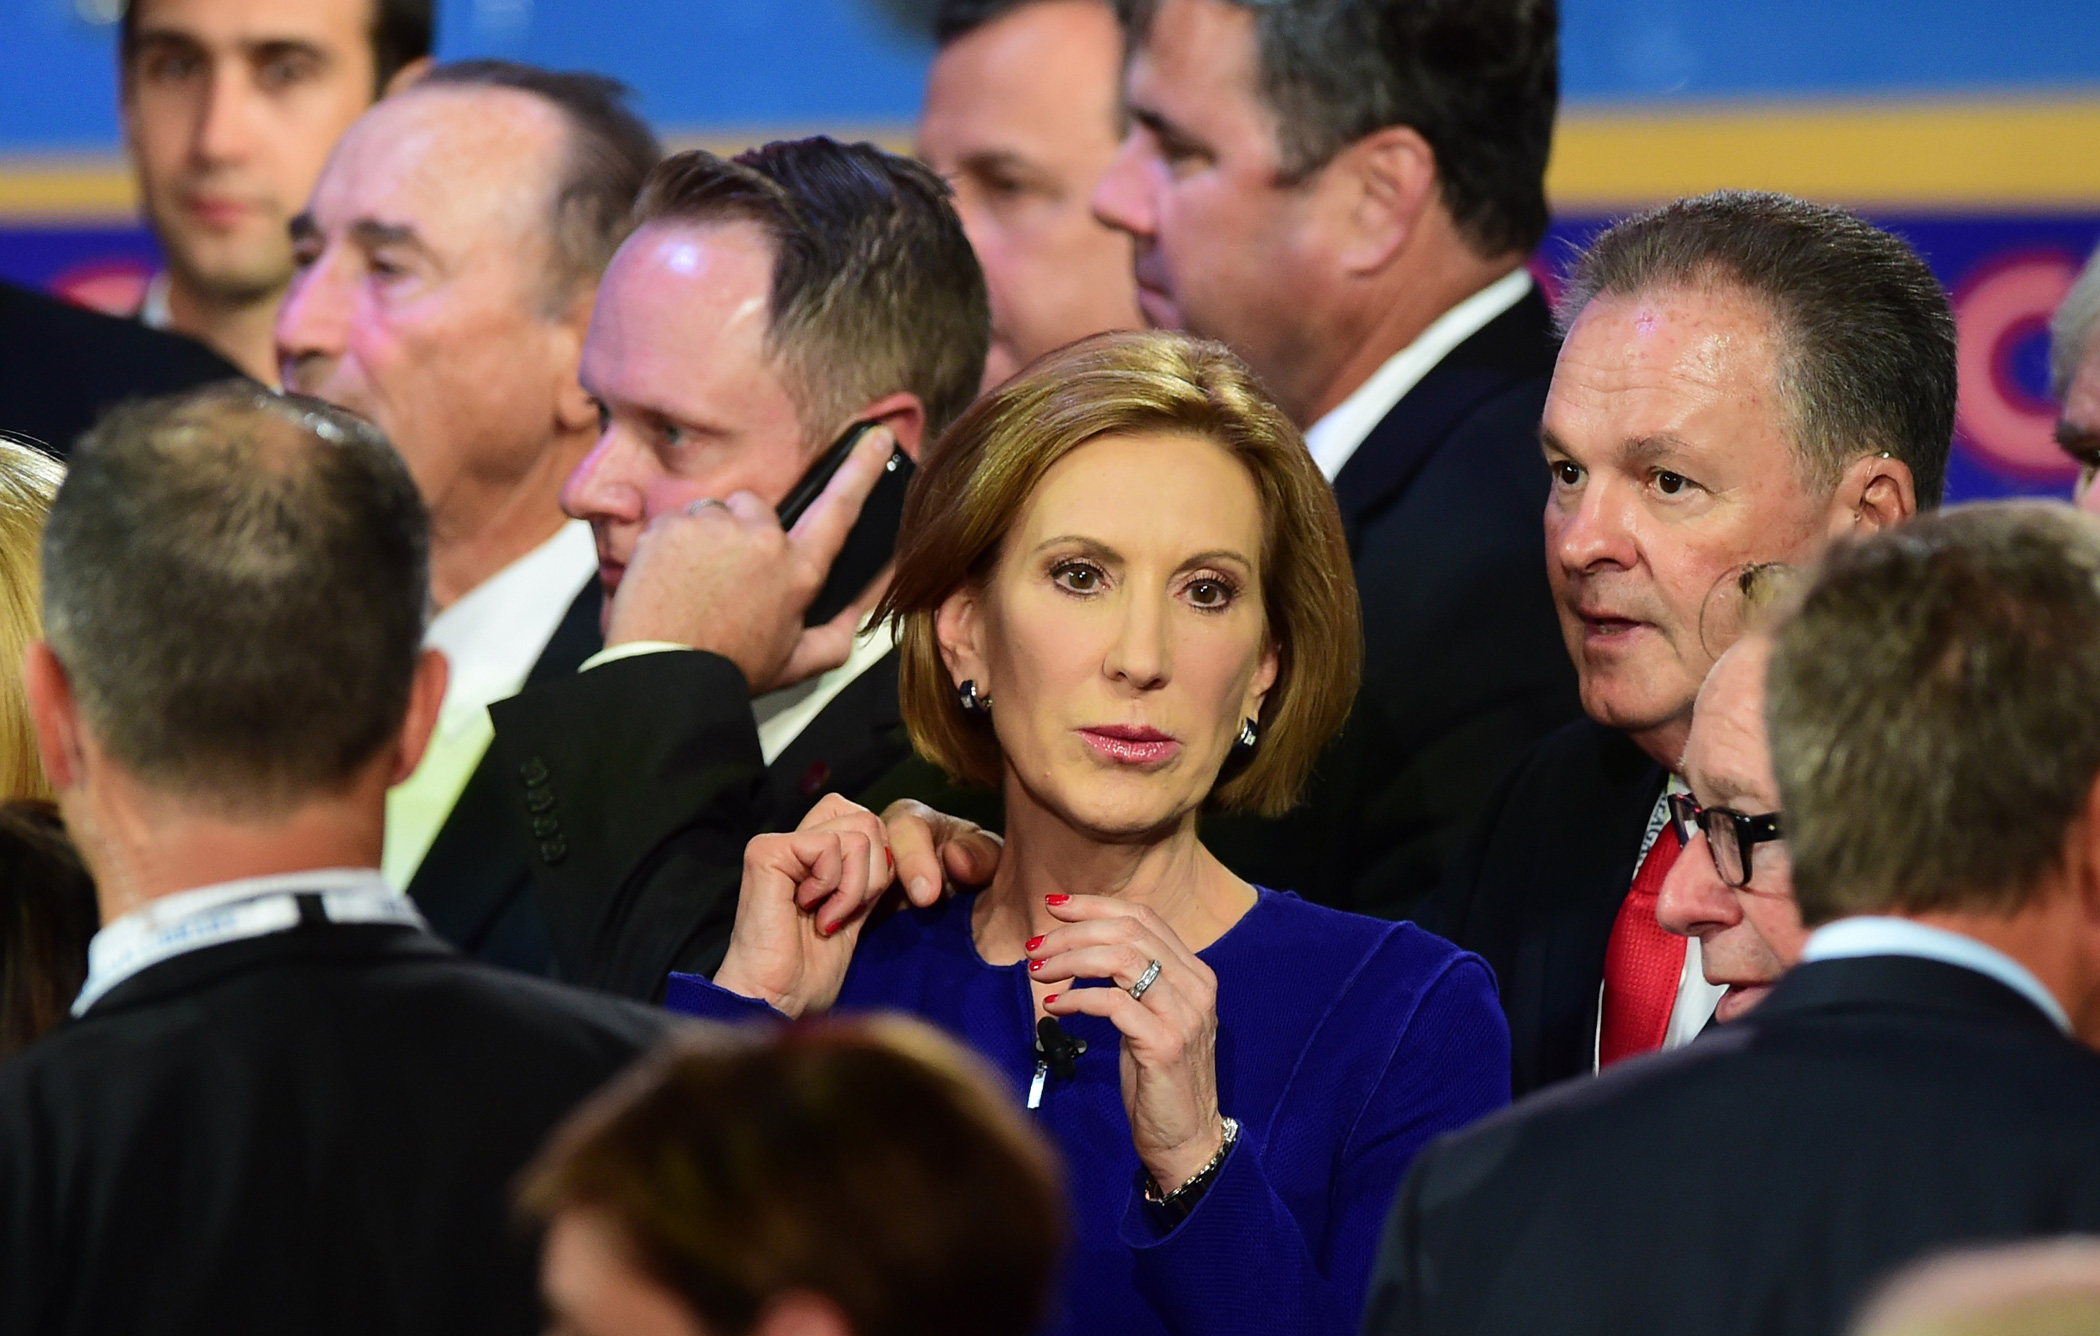 Carly Fiorina mingles amid the crowd following the Presidential debate on Sept. 16, 2015 in Simi Valley, Calif.